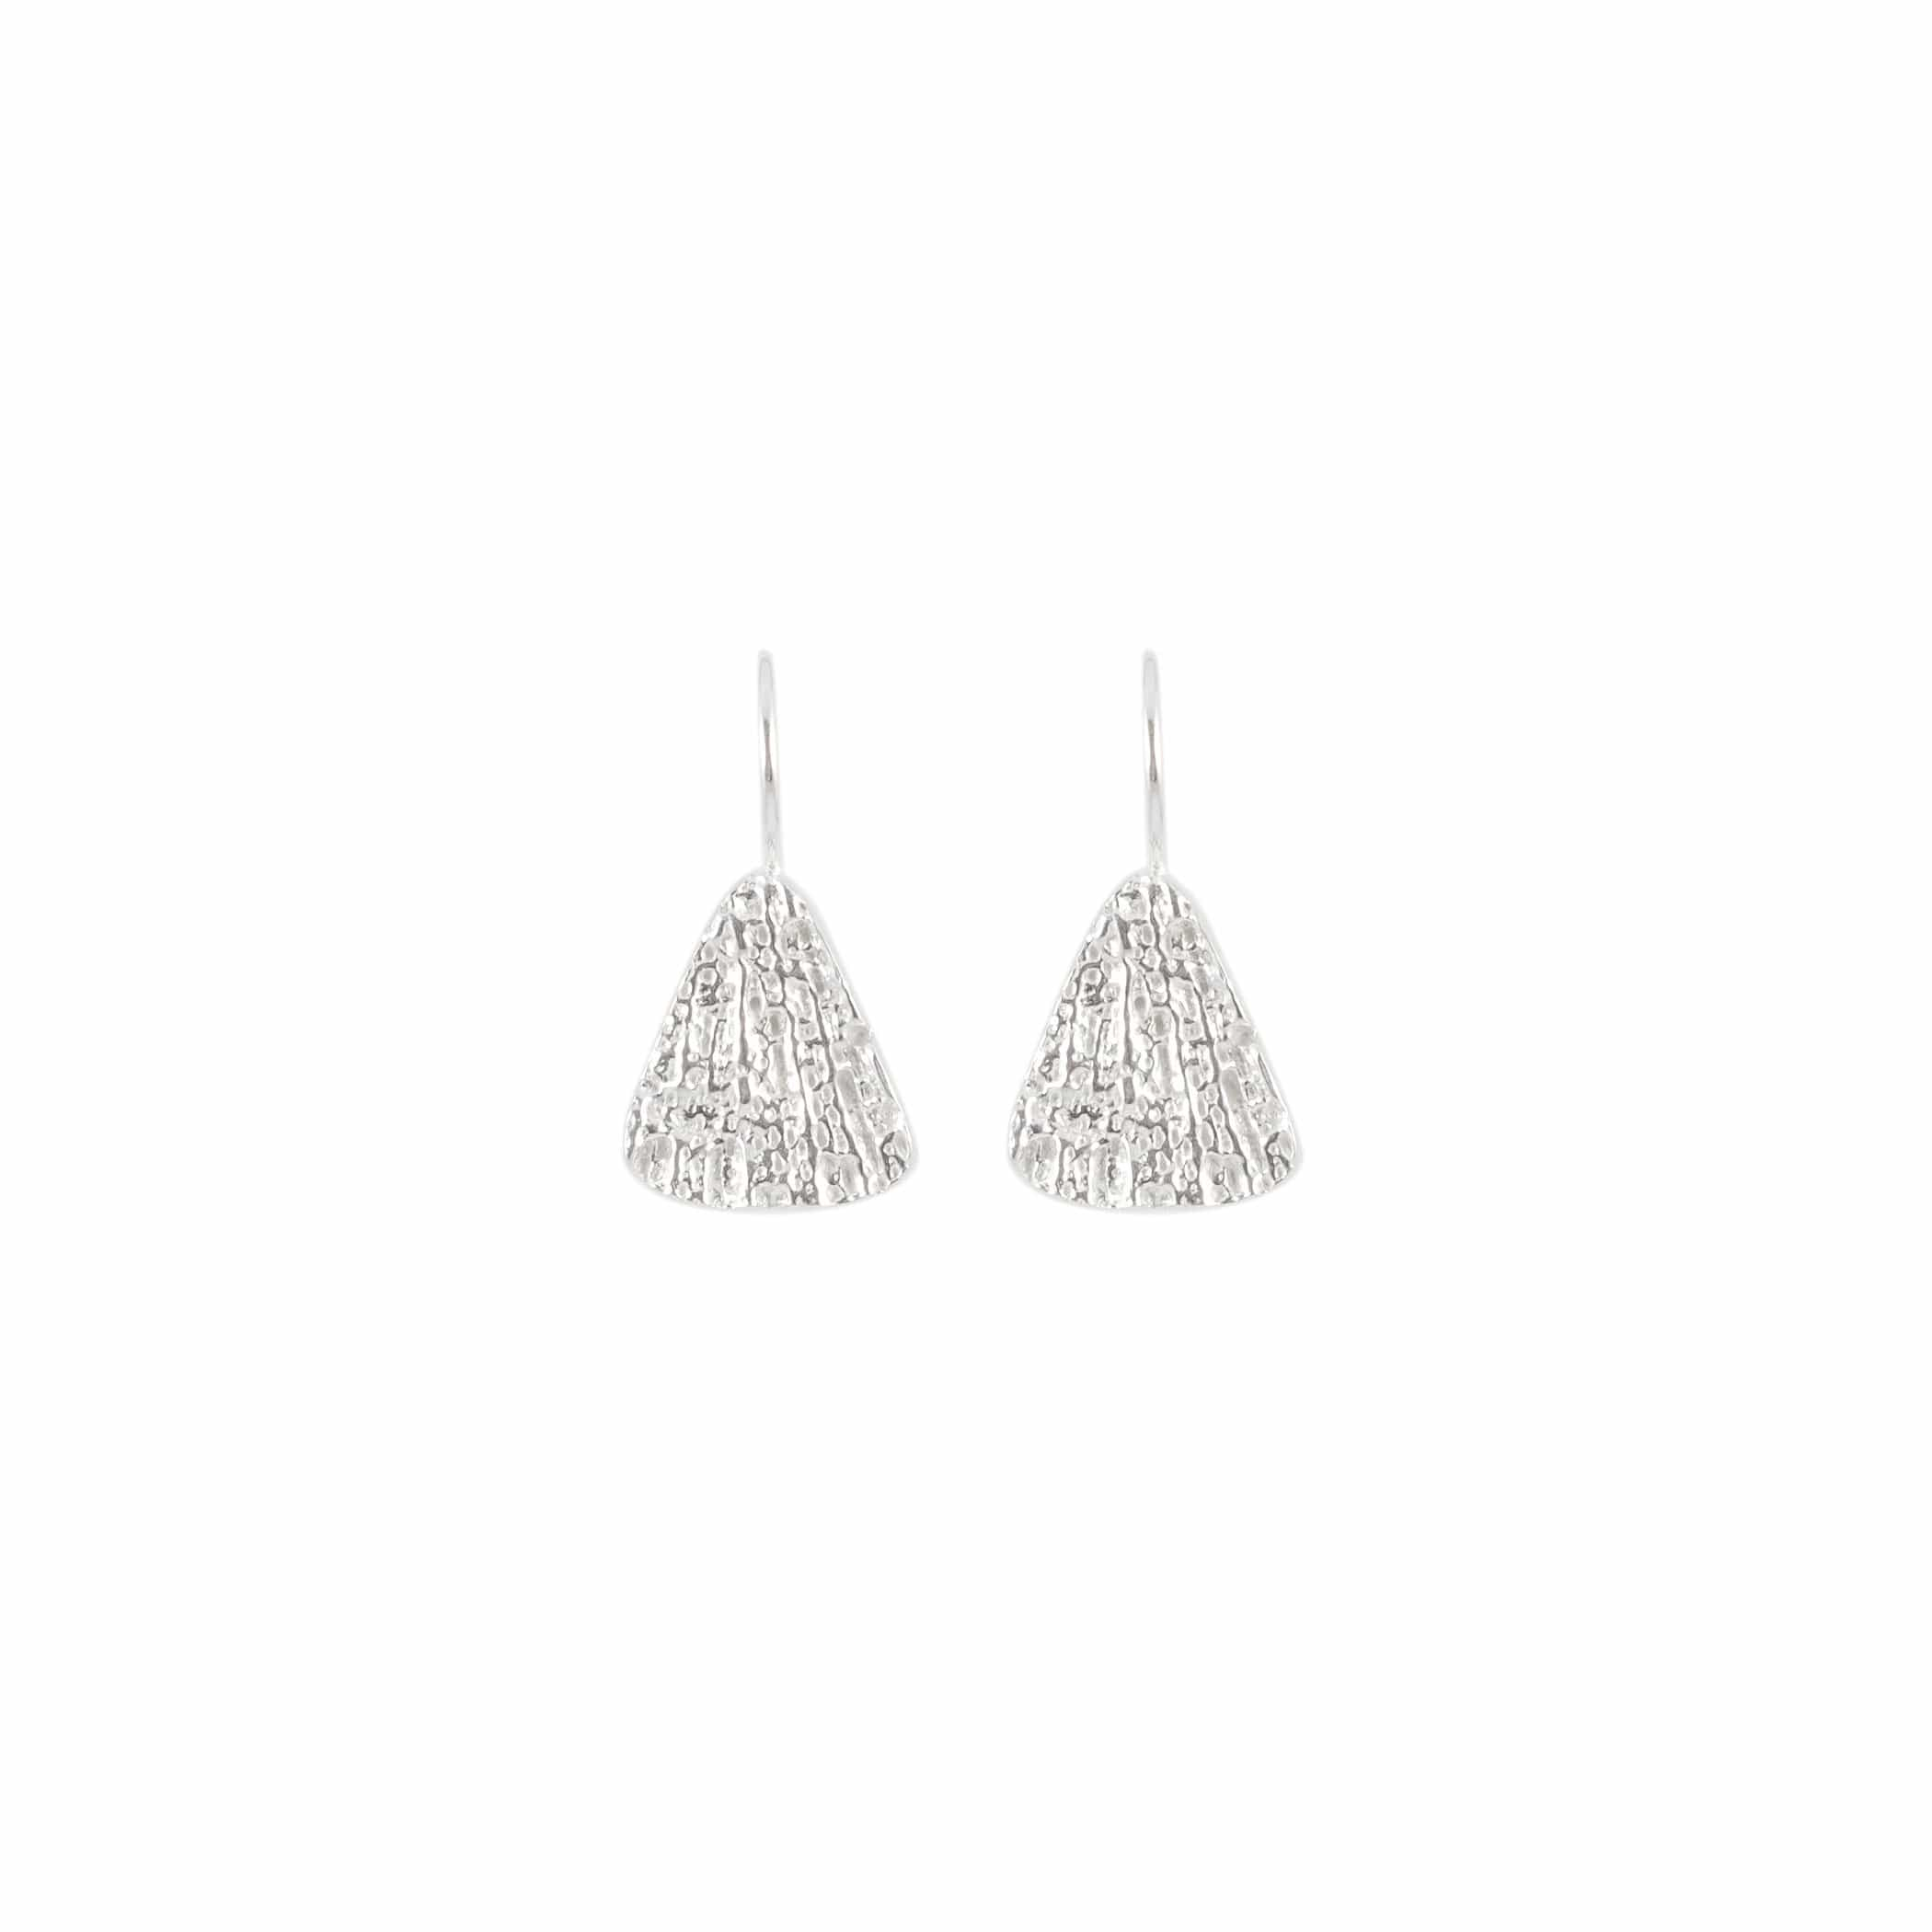 Small Triangle Earrings, Sterling Silver